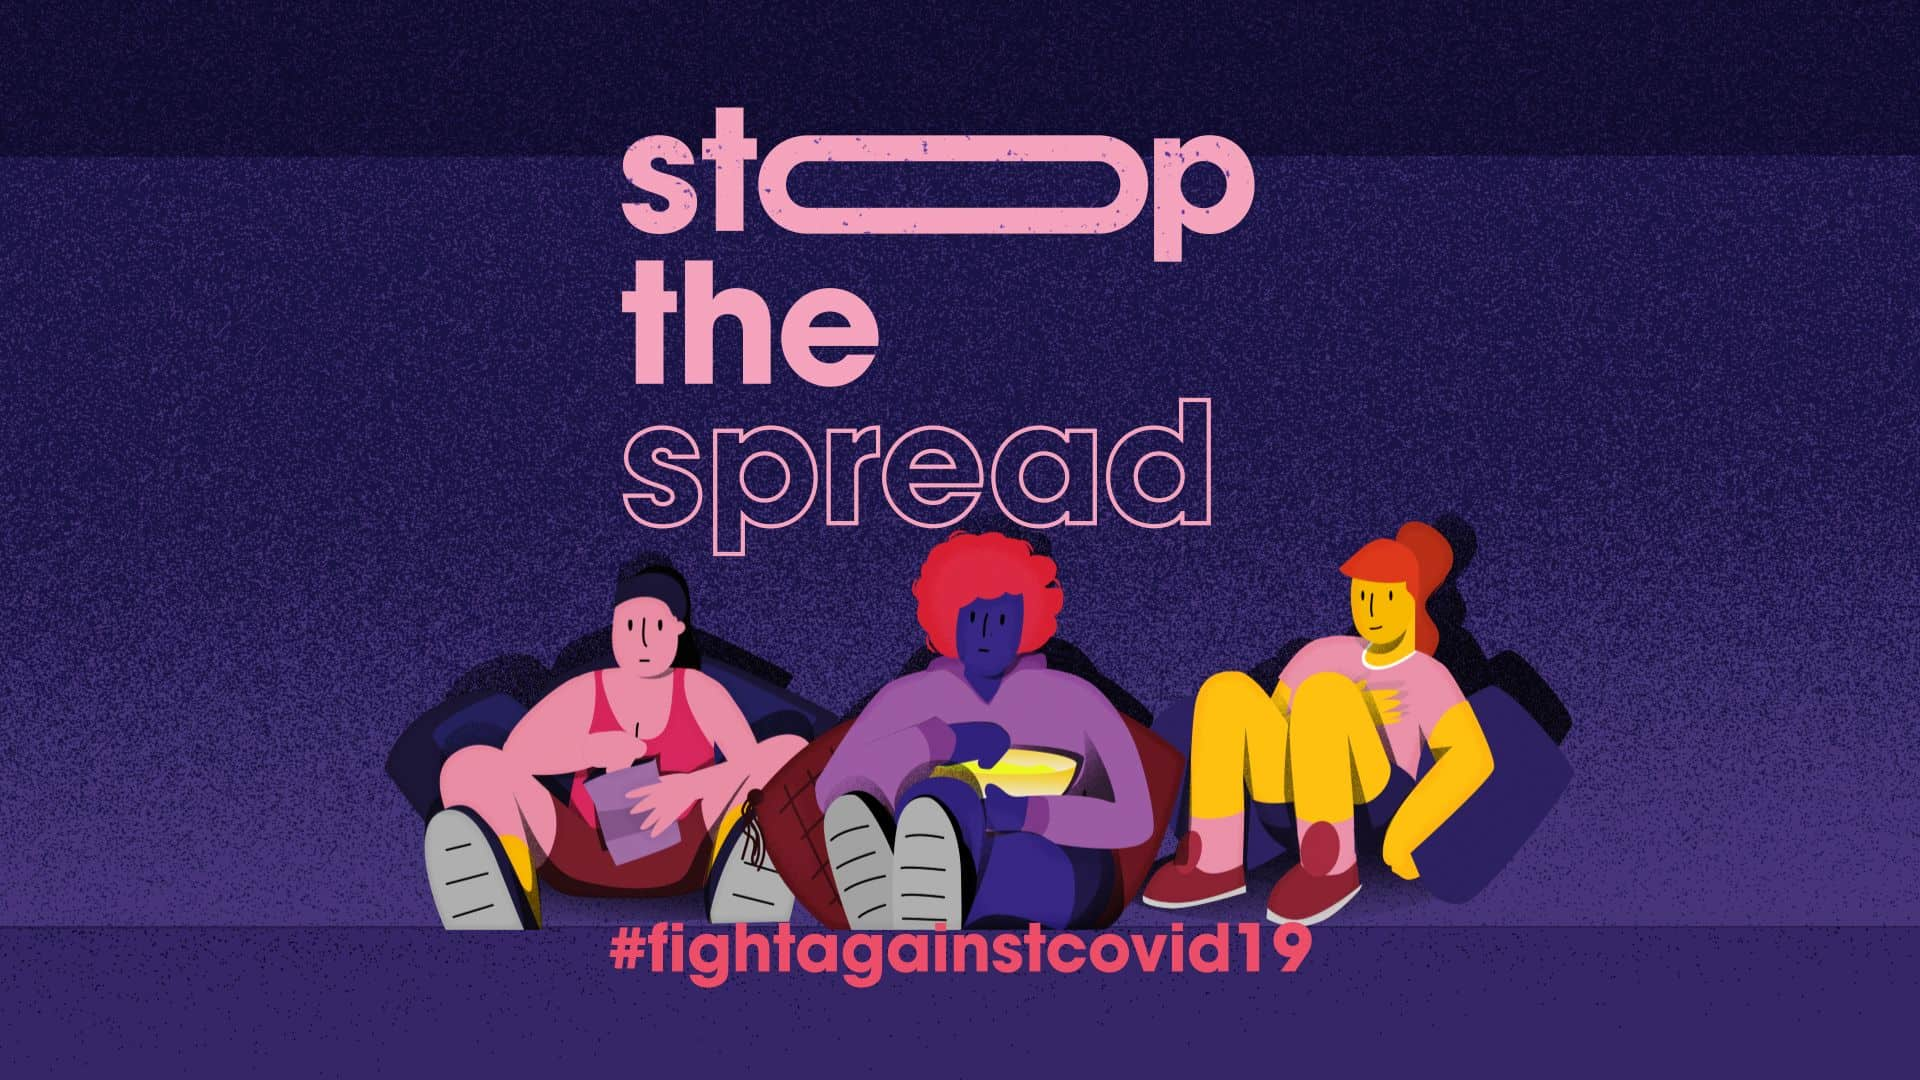 illustration with words 'stop the spread, #fightagainstcovid19' with characters eating popcorn on bean bags